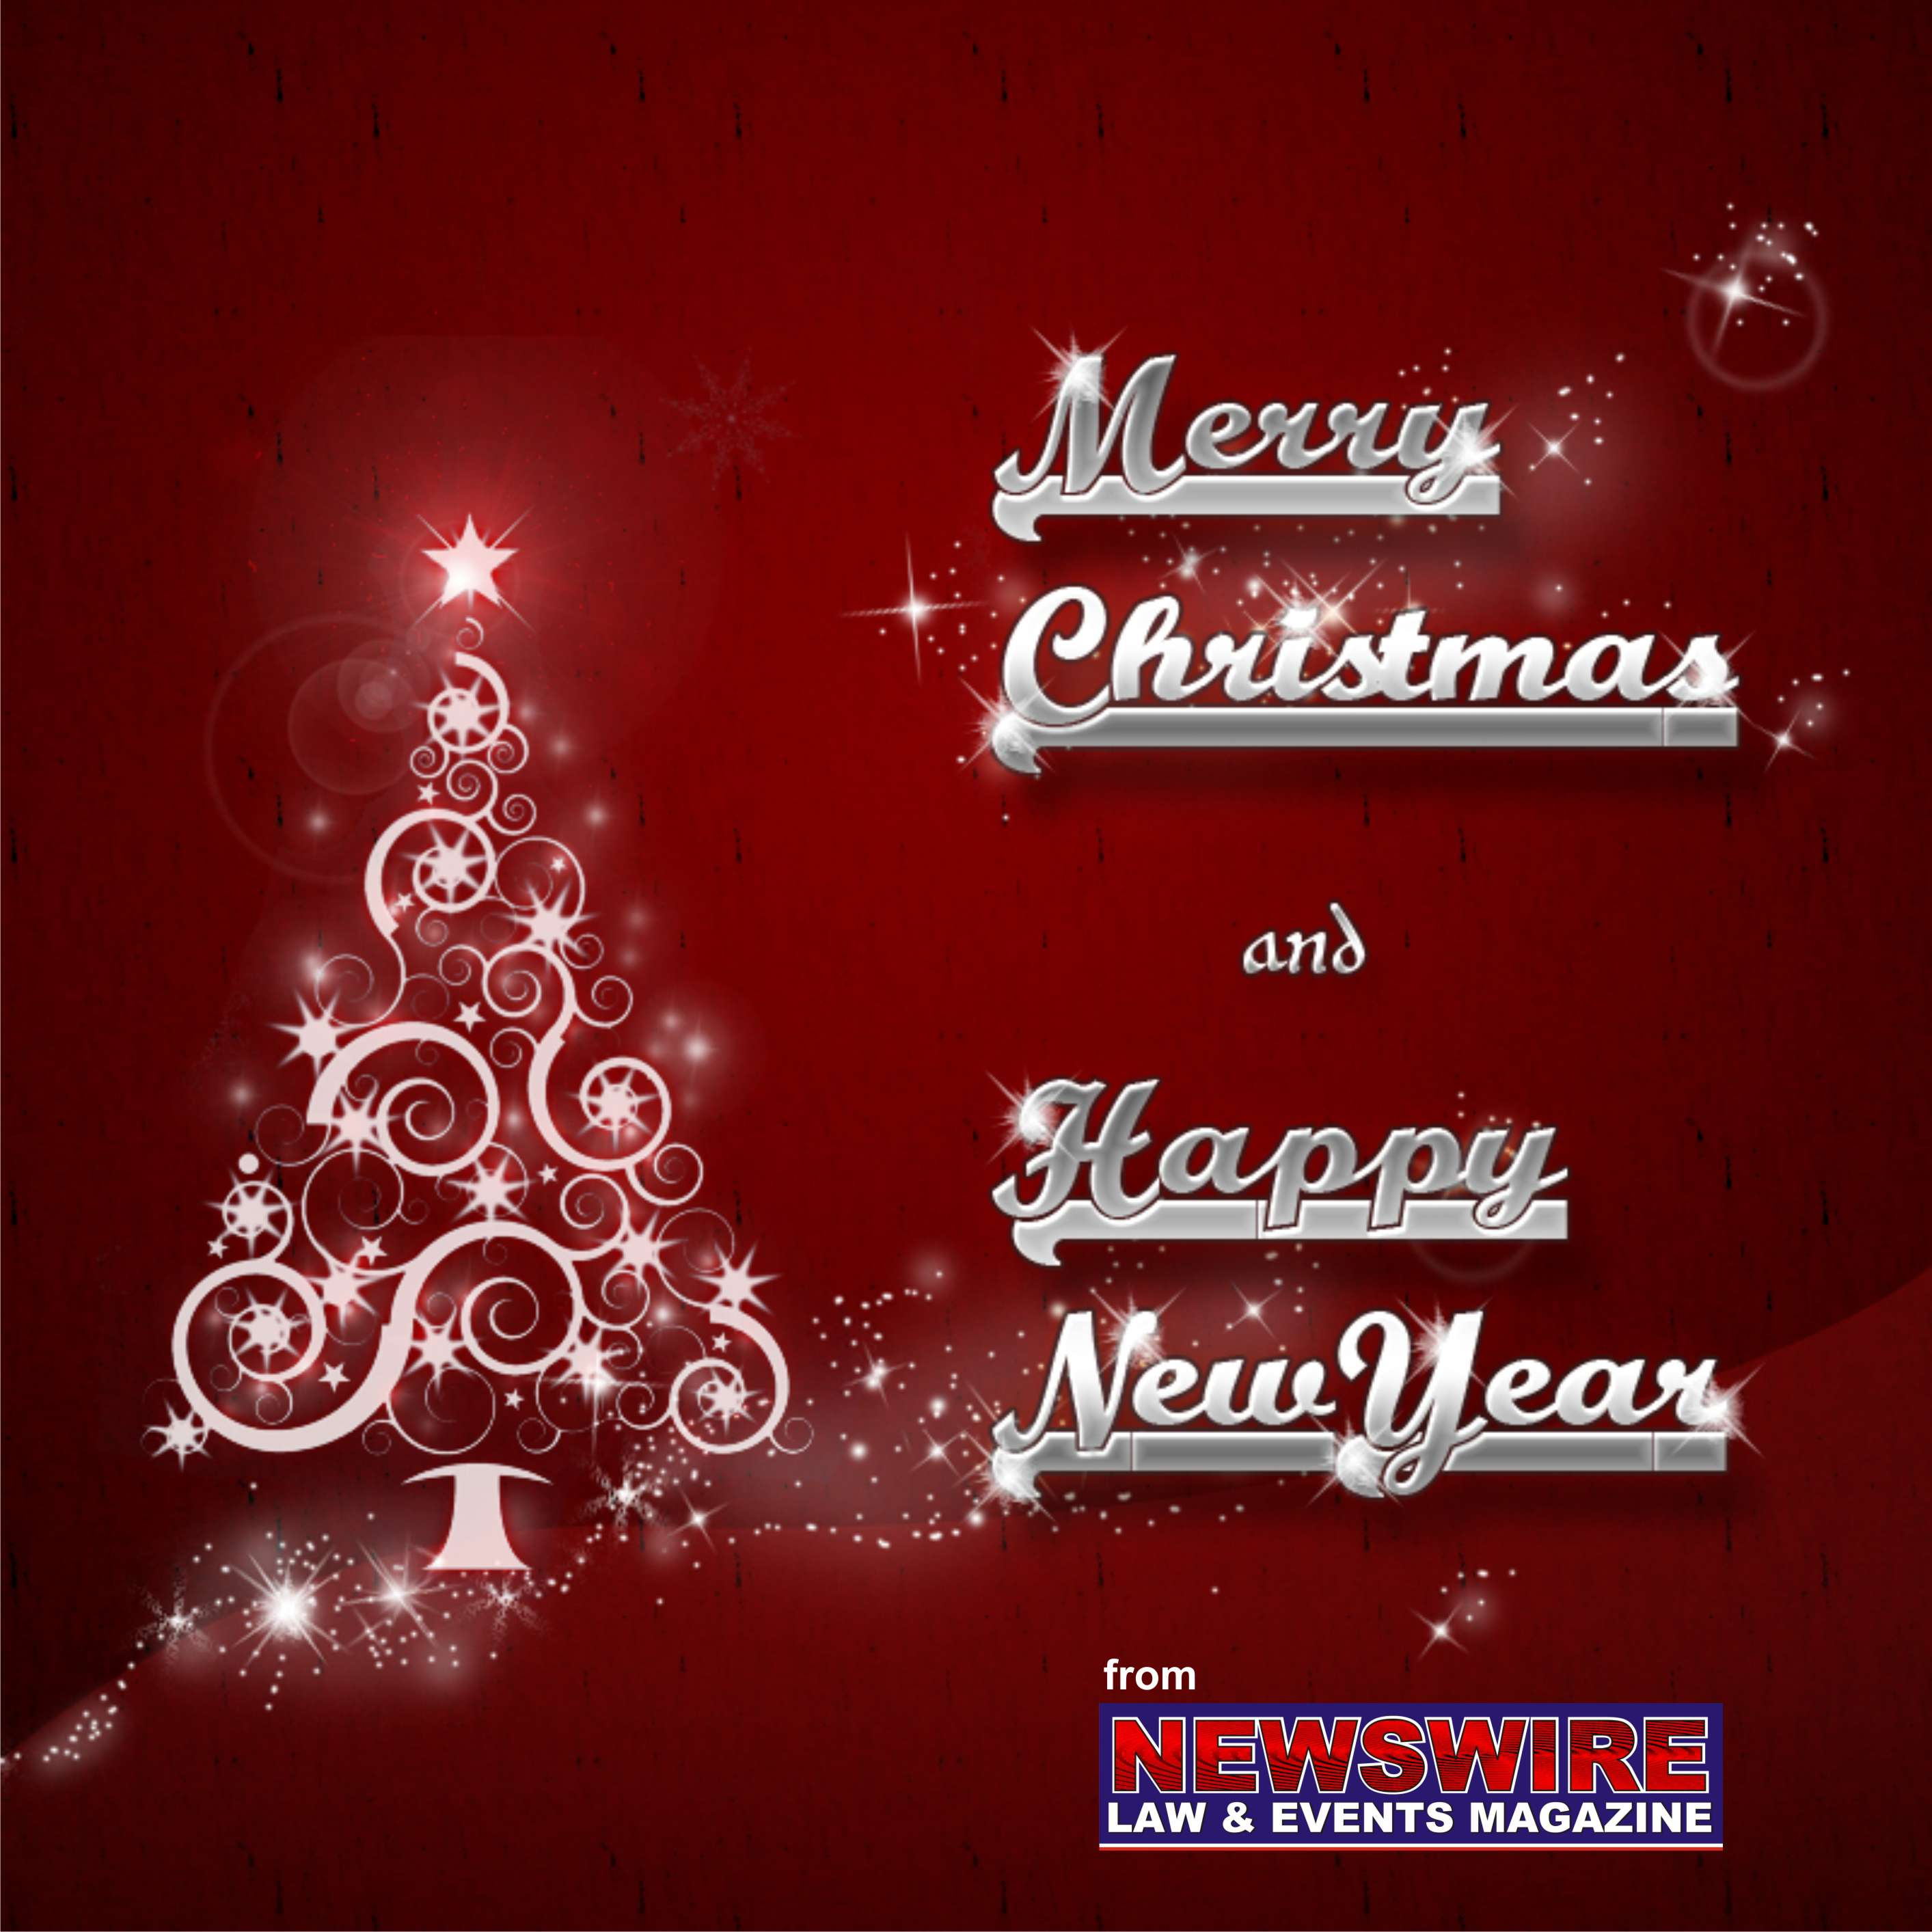 Xmas greetings newswire law and events xmas greetings m4hsunfo